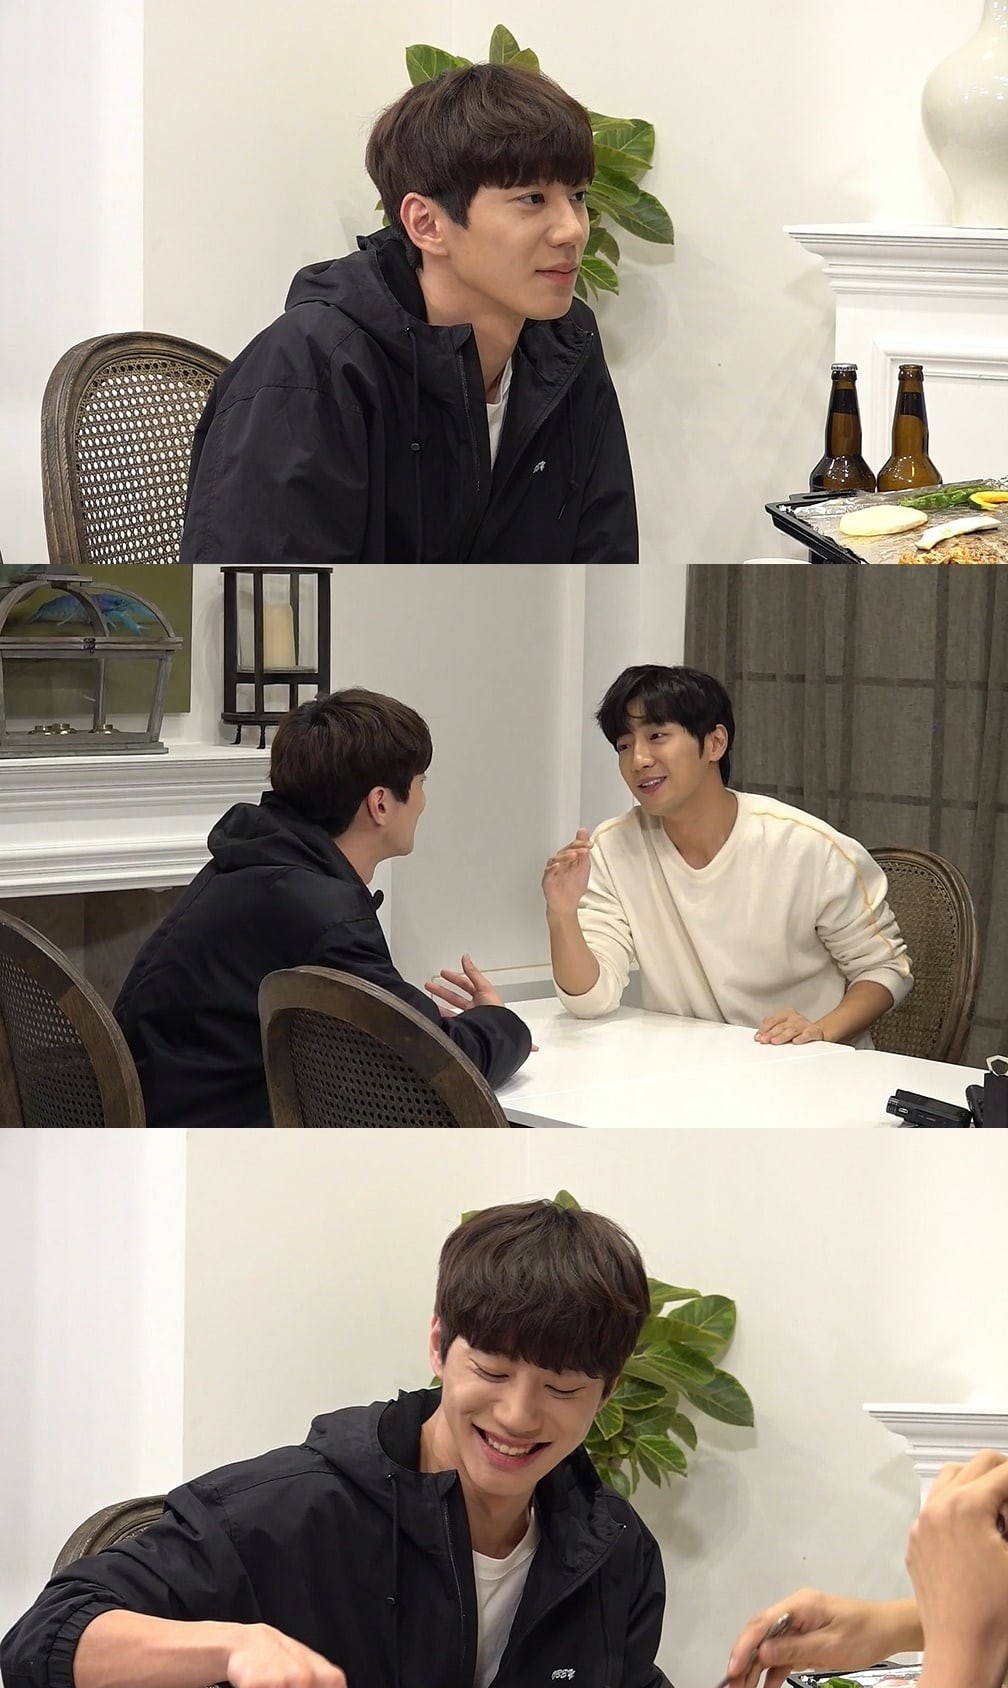 """""""The manager"""": Lee Jun Young, Lee Sang Yeob, and Yoo In Young share a meal and show close friendship"""